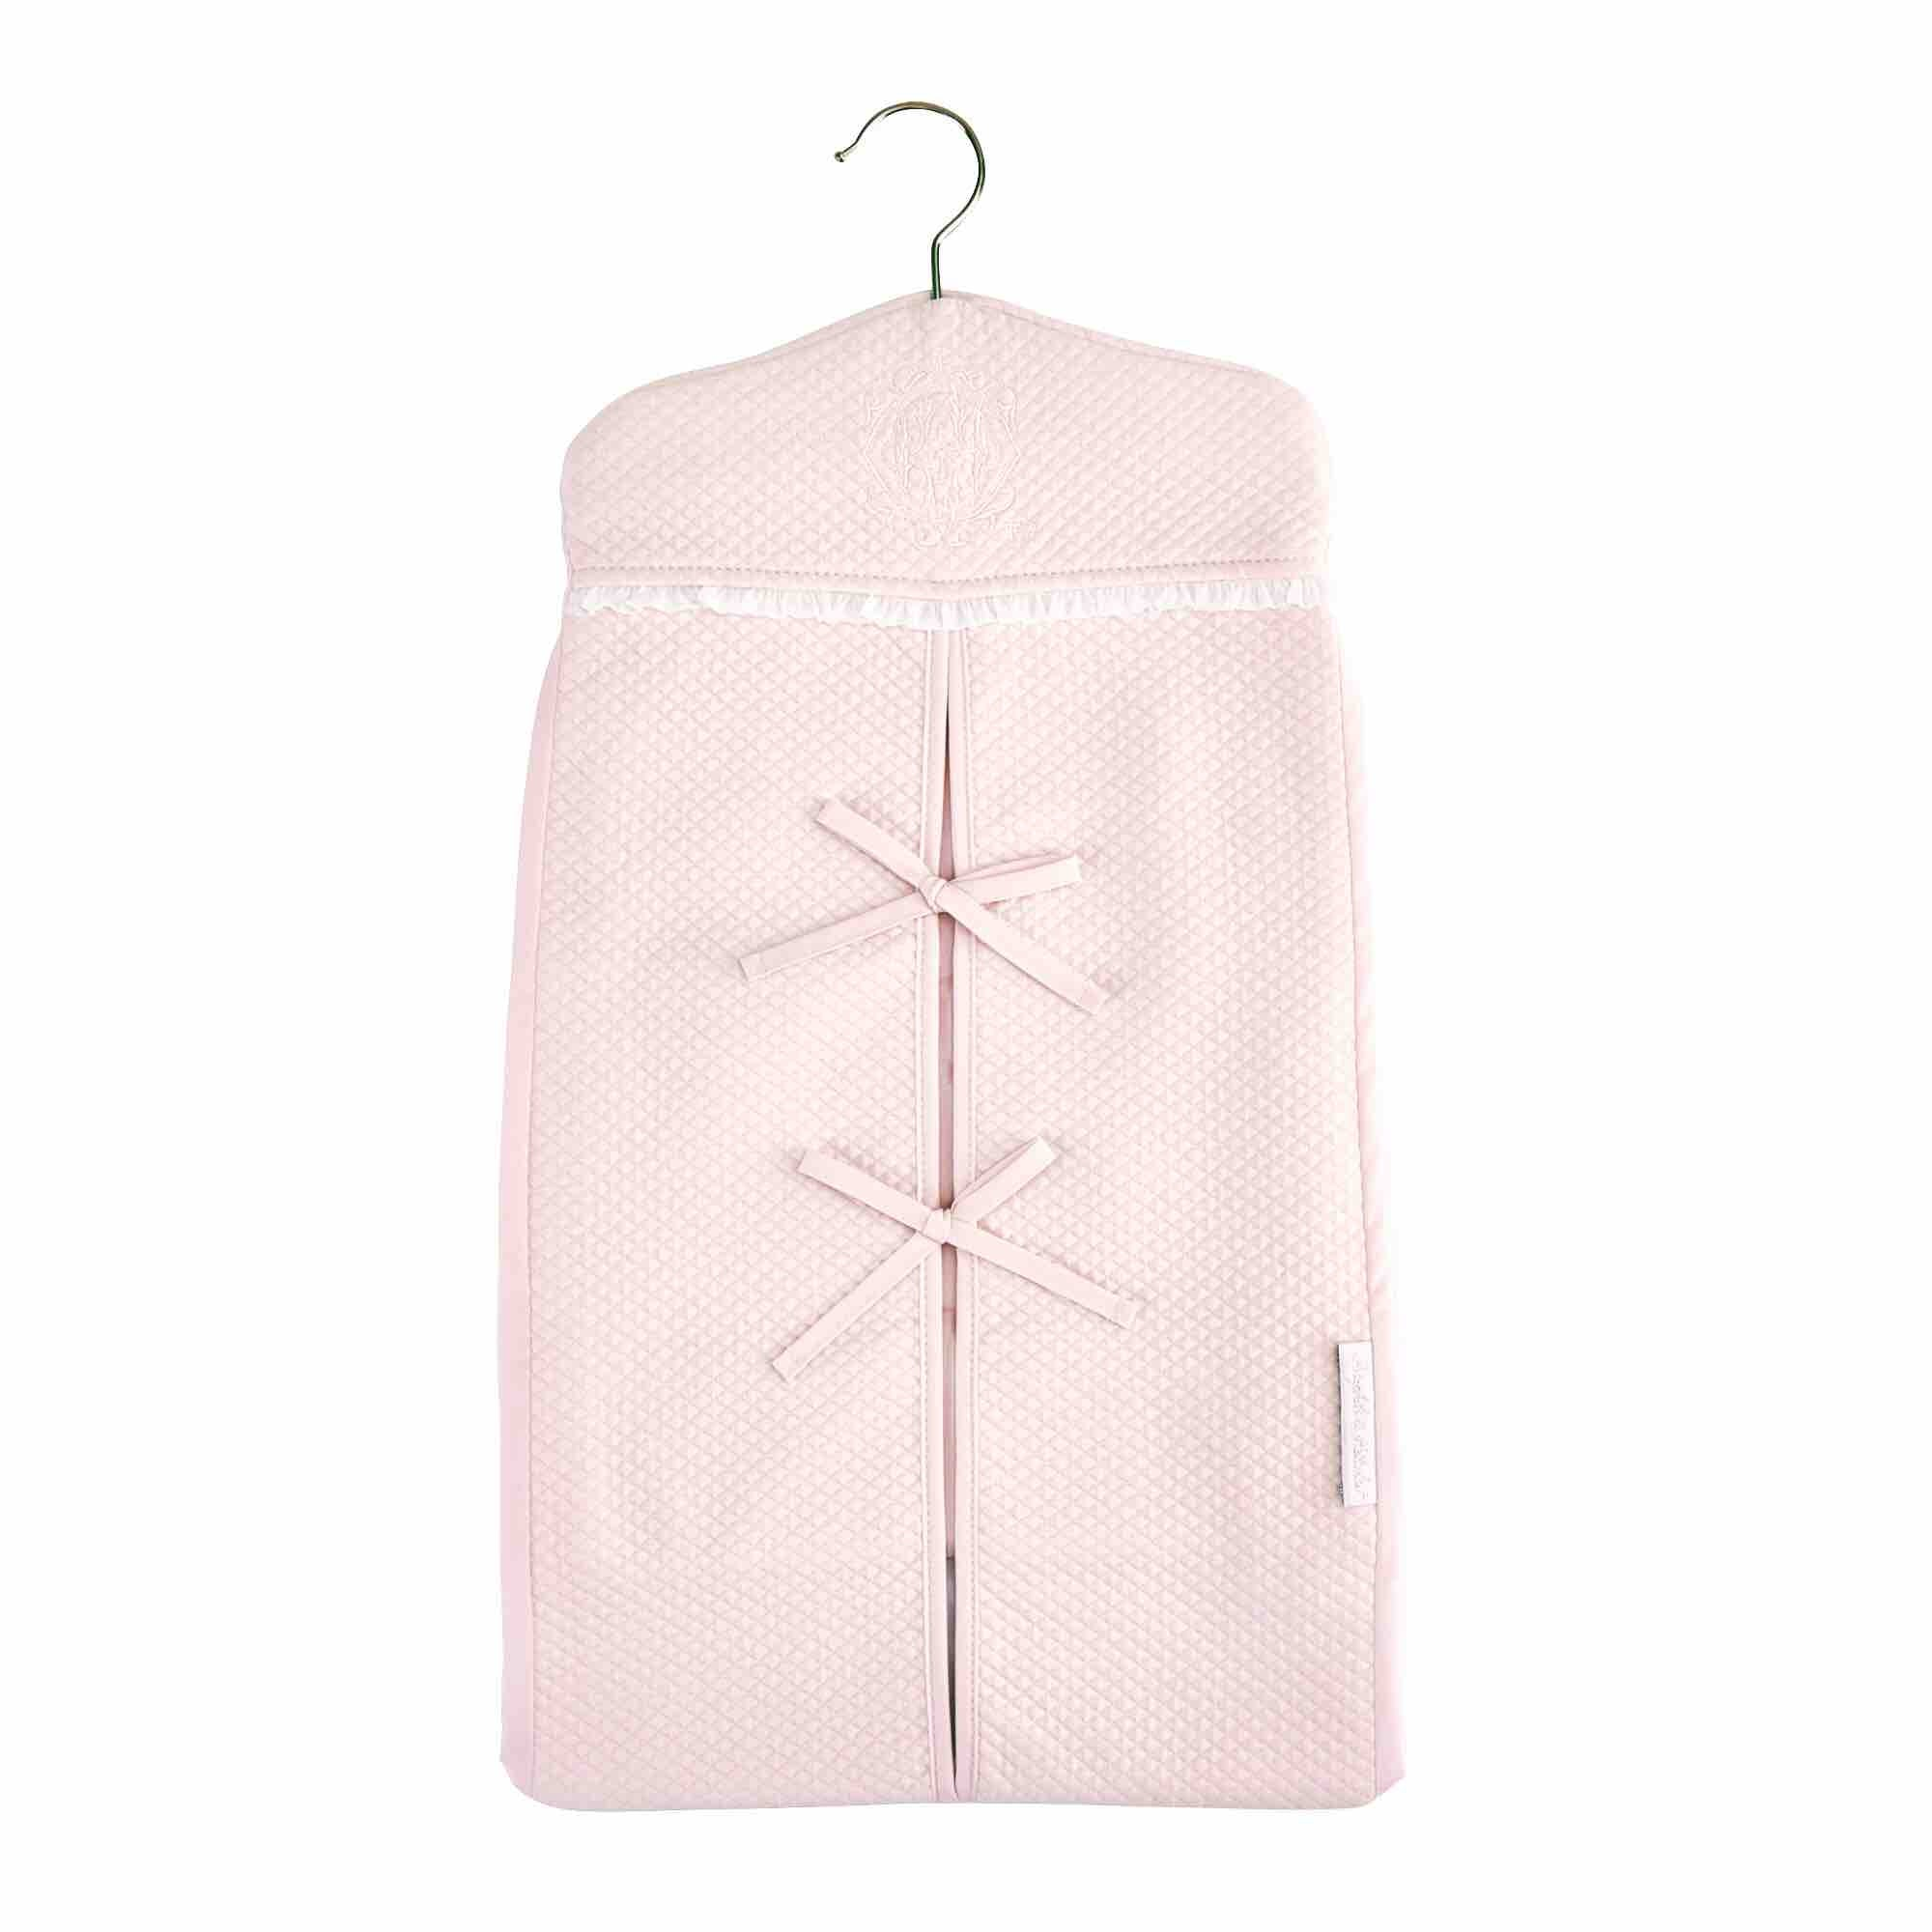 Theophile & Patachou Nappy Stacker - Royal Pink